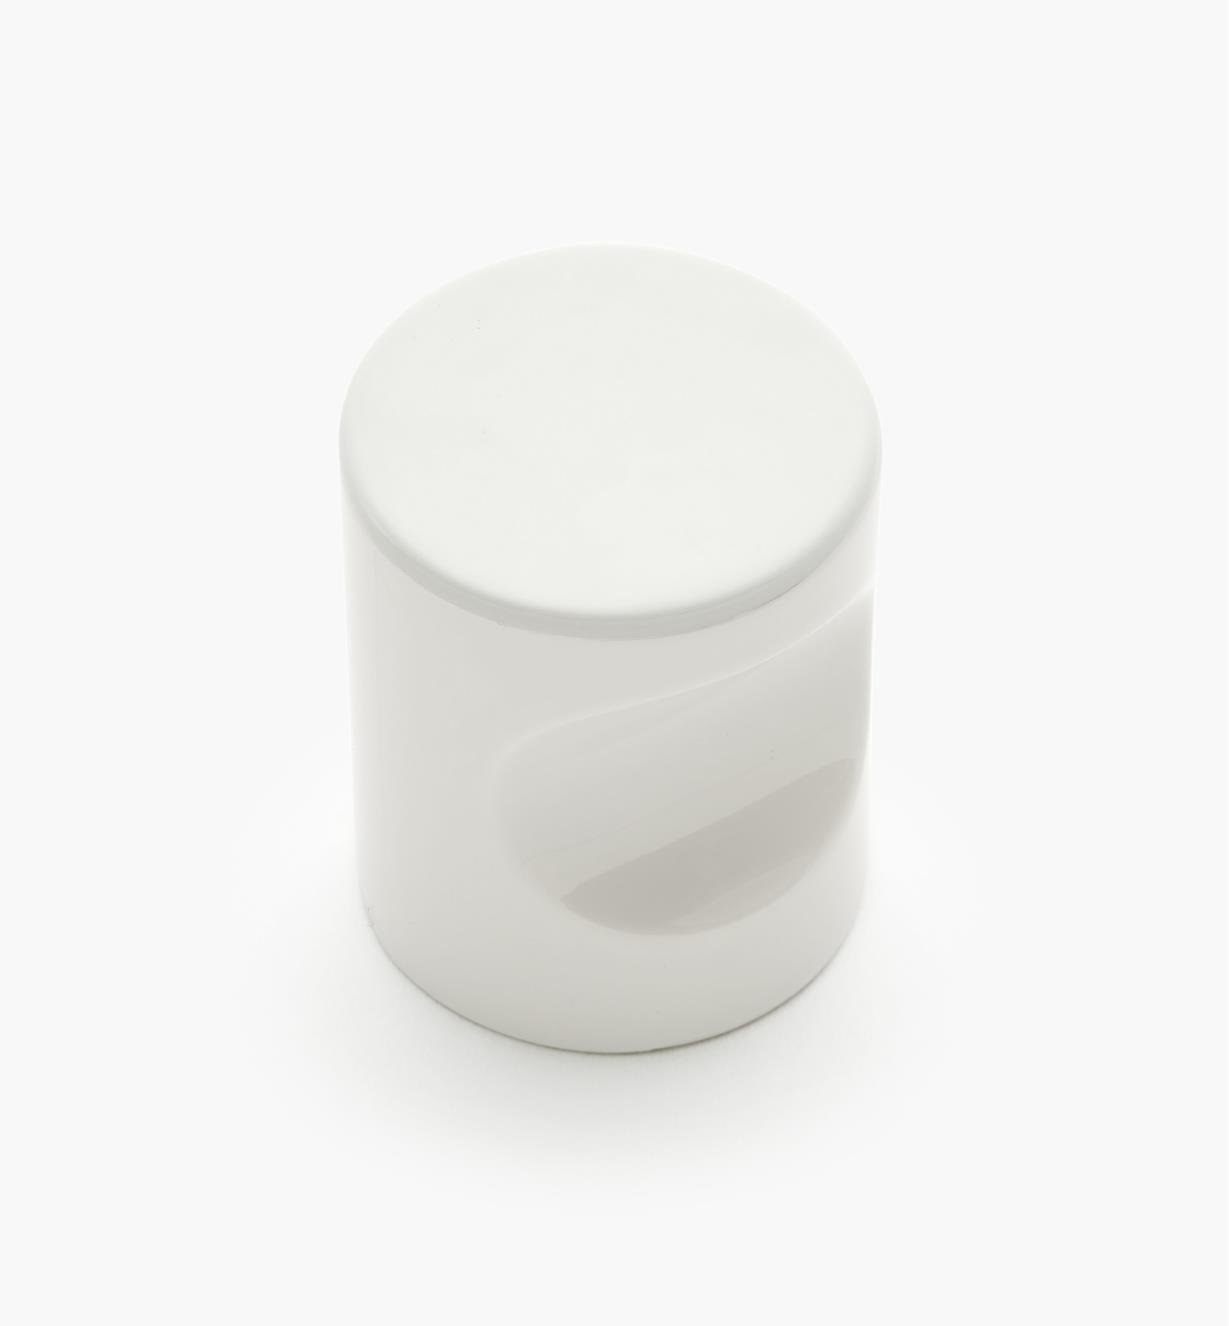 "01W4532 - 23mm x 1 11/16"" White Notched Pull/Knob"